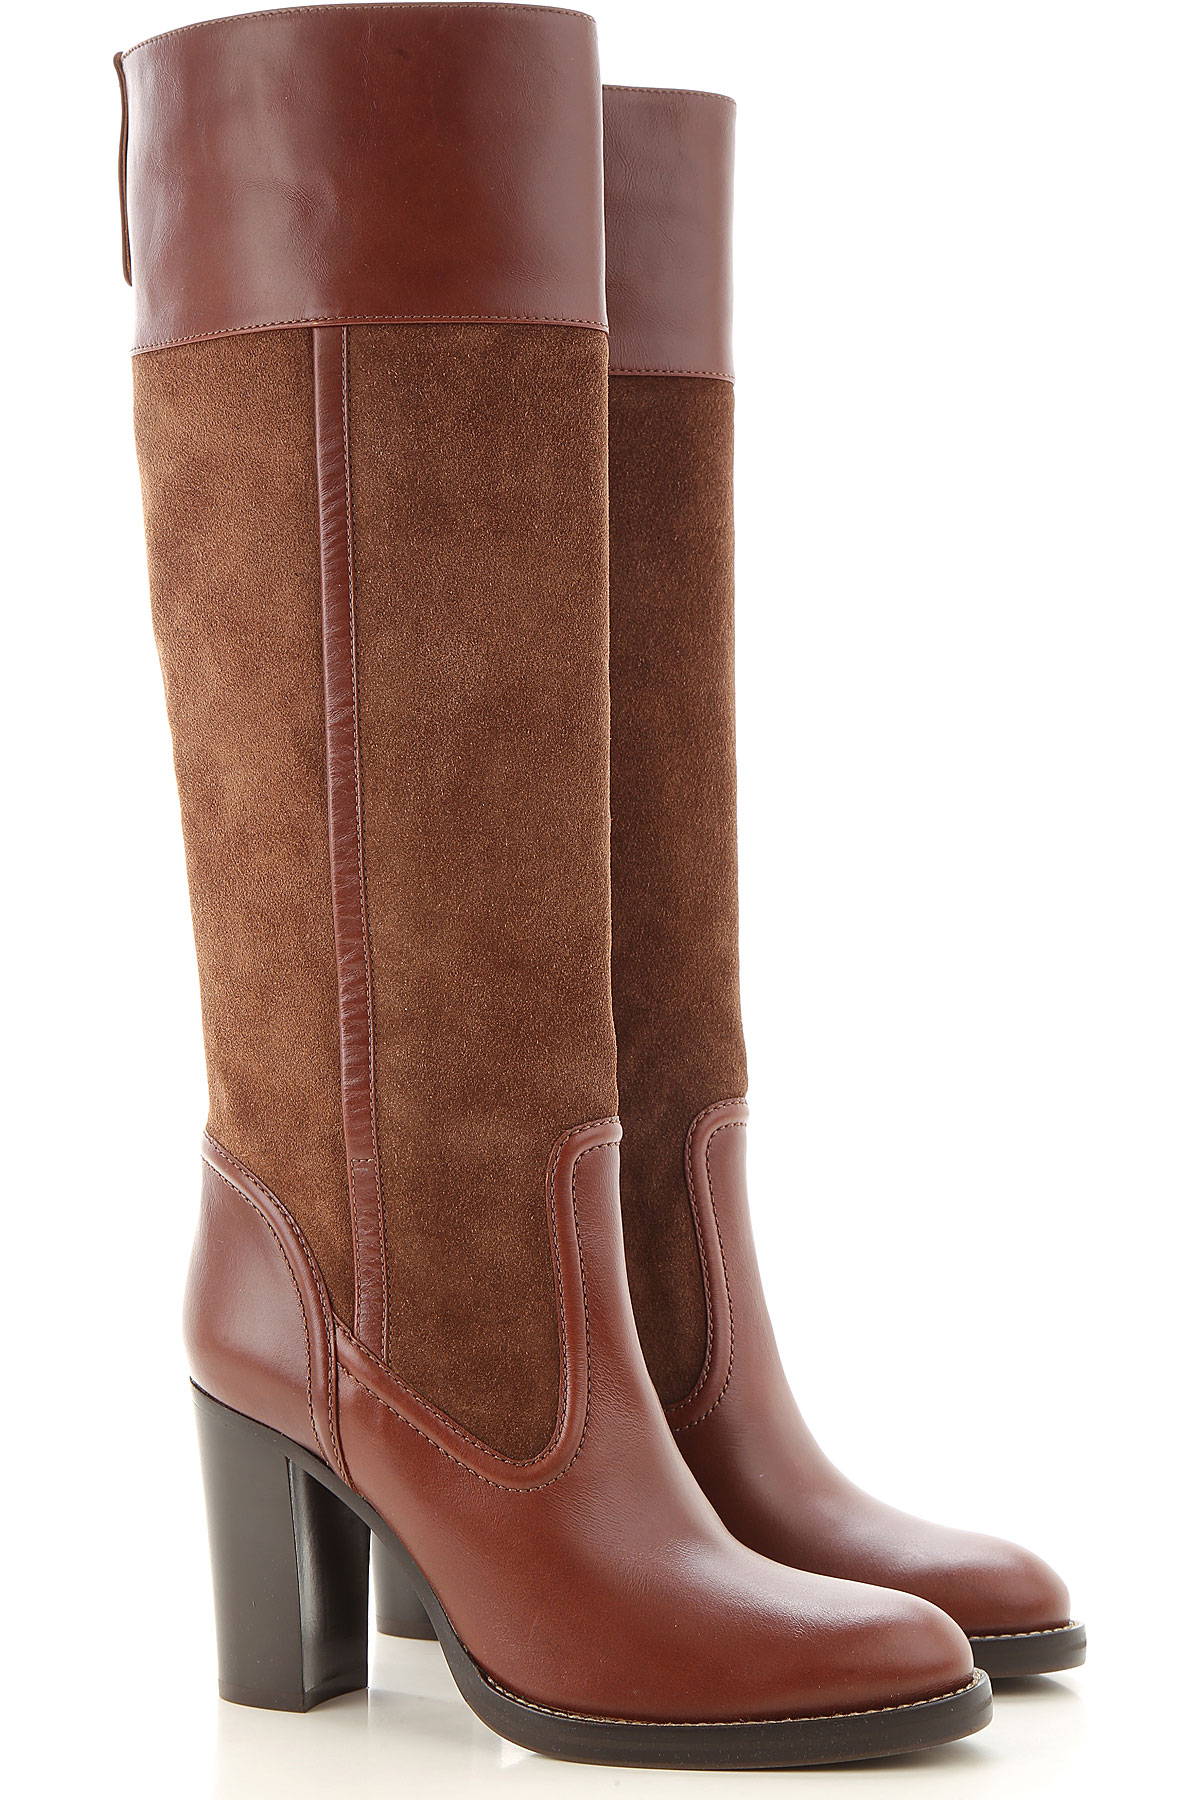 Chloe Boots for Women, Booties On Sale, Roasted Brown, suede, 2019, 10 6 6.5 7 8